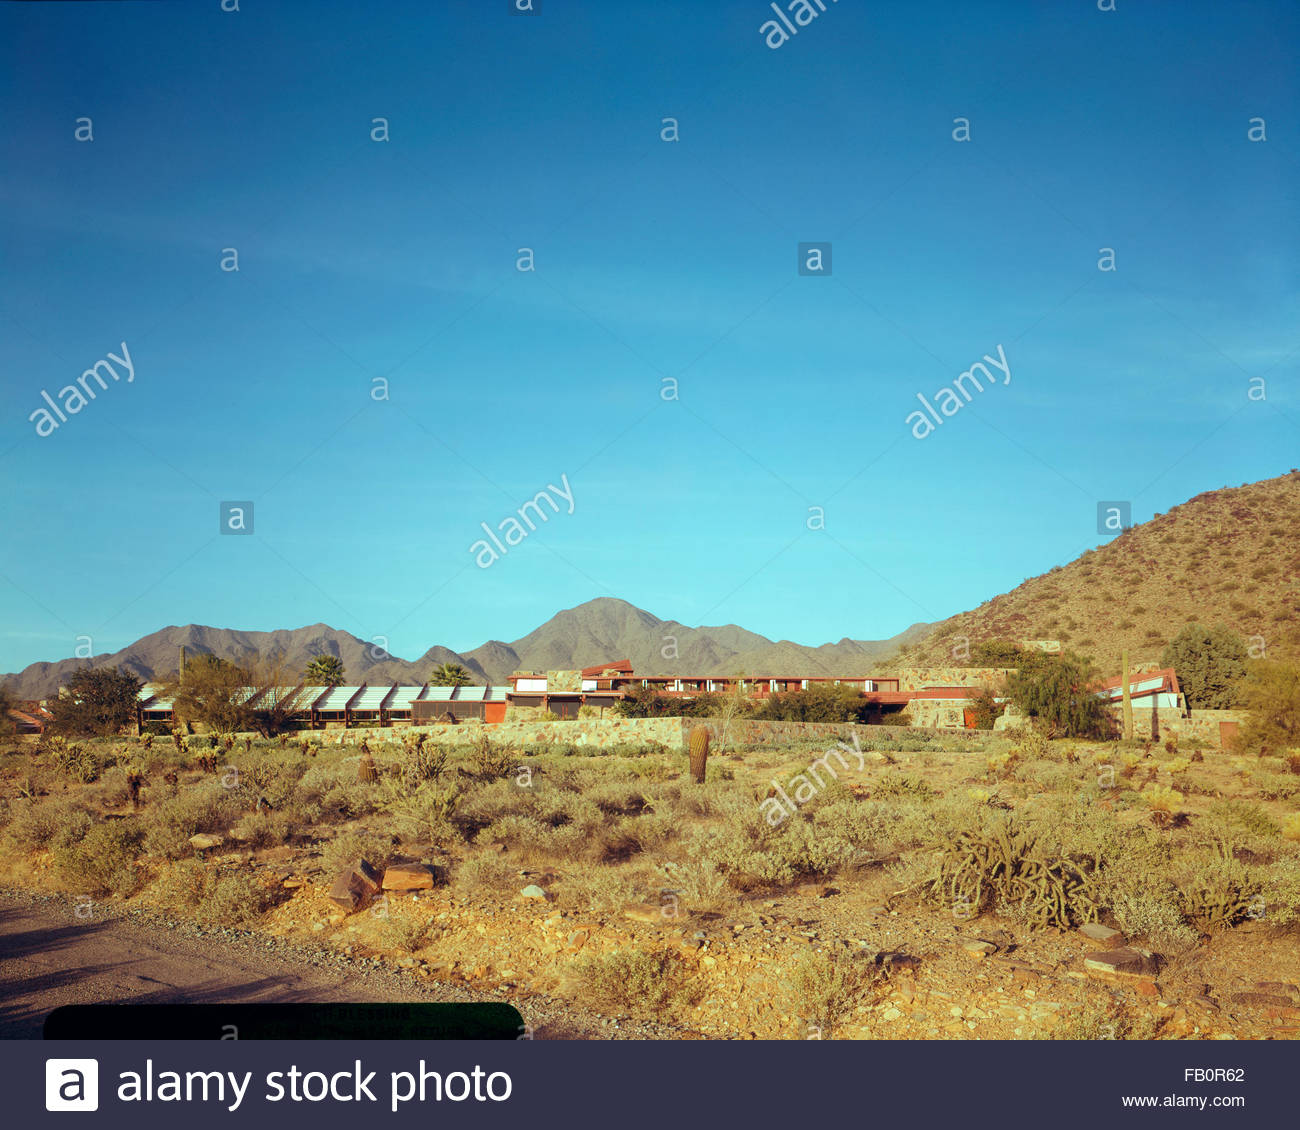 Taliesin West in Scottsdale (Ariz.), 1942 Feb.-1963. Distant view of building and surrounding property. - Stock Image